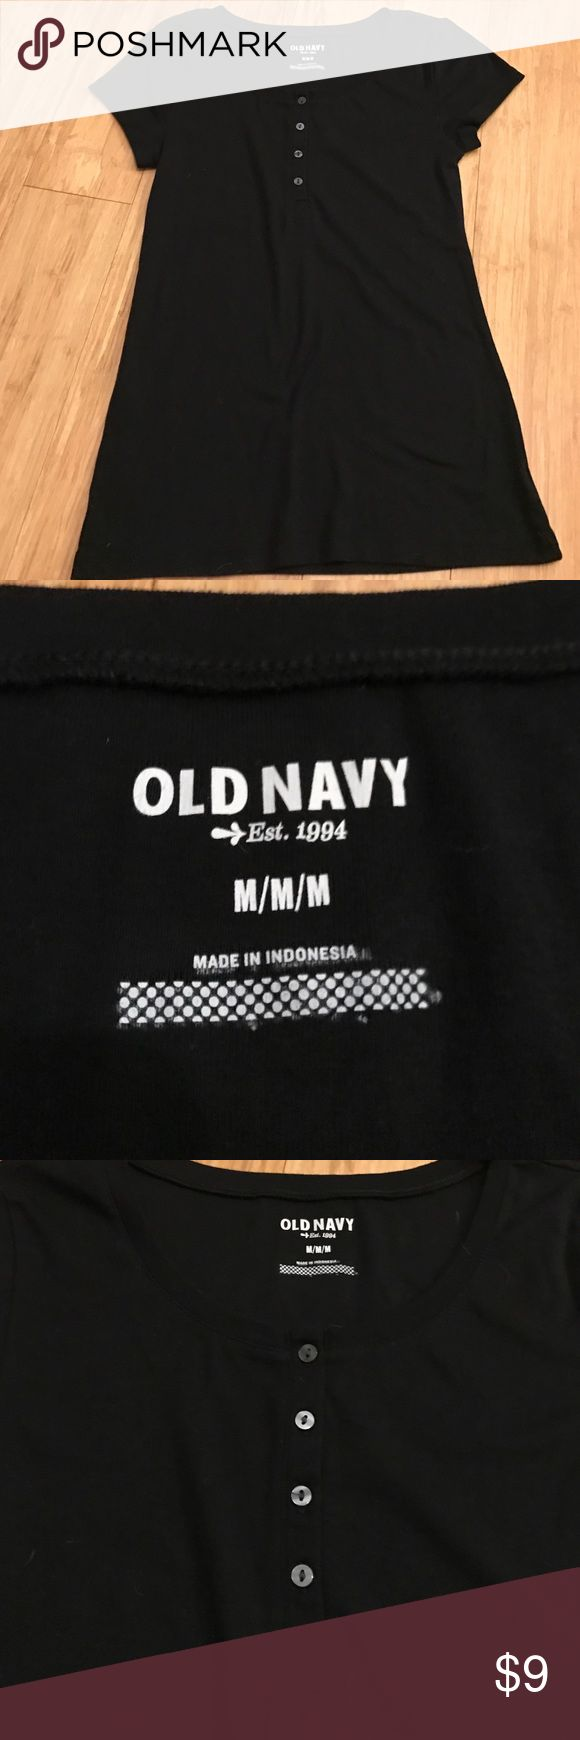 NWOT old navy tee NWOT old navy tee on black. Crew neck with 4 button that do open up. Old Navy Tops Tees - Short Sleeve